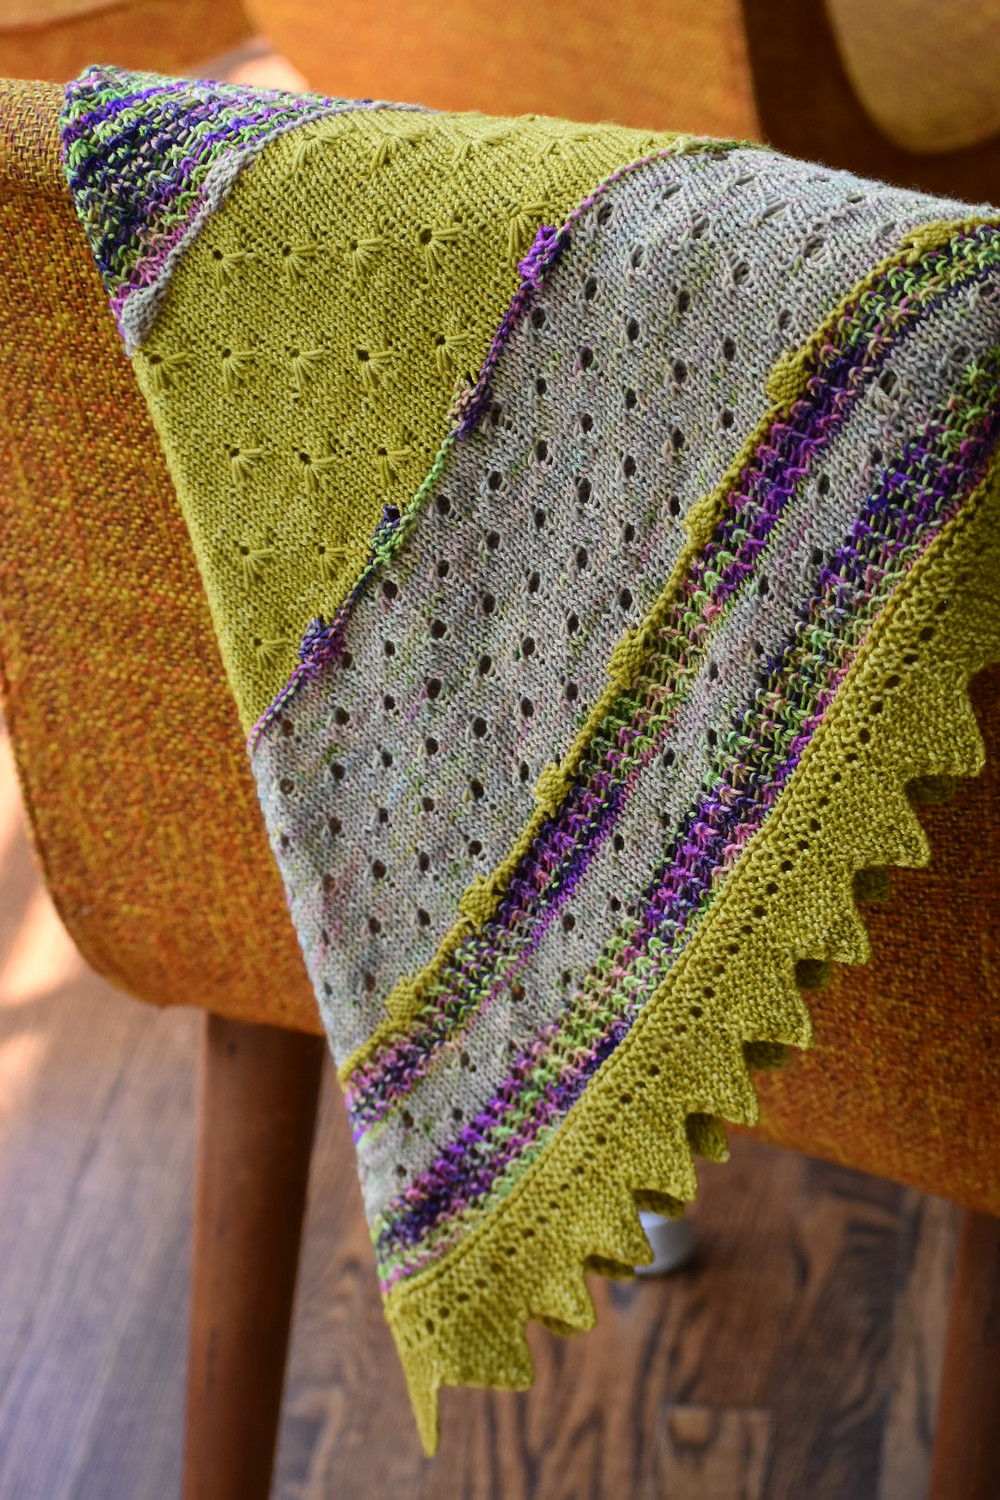 A yellow, purple and oatmeal knit shawl draped on an orange chair